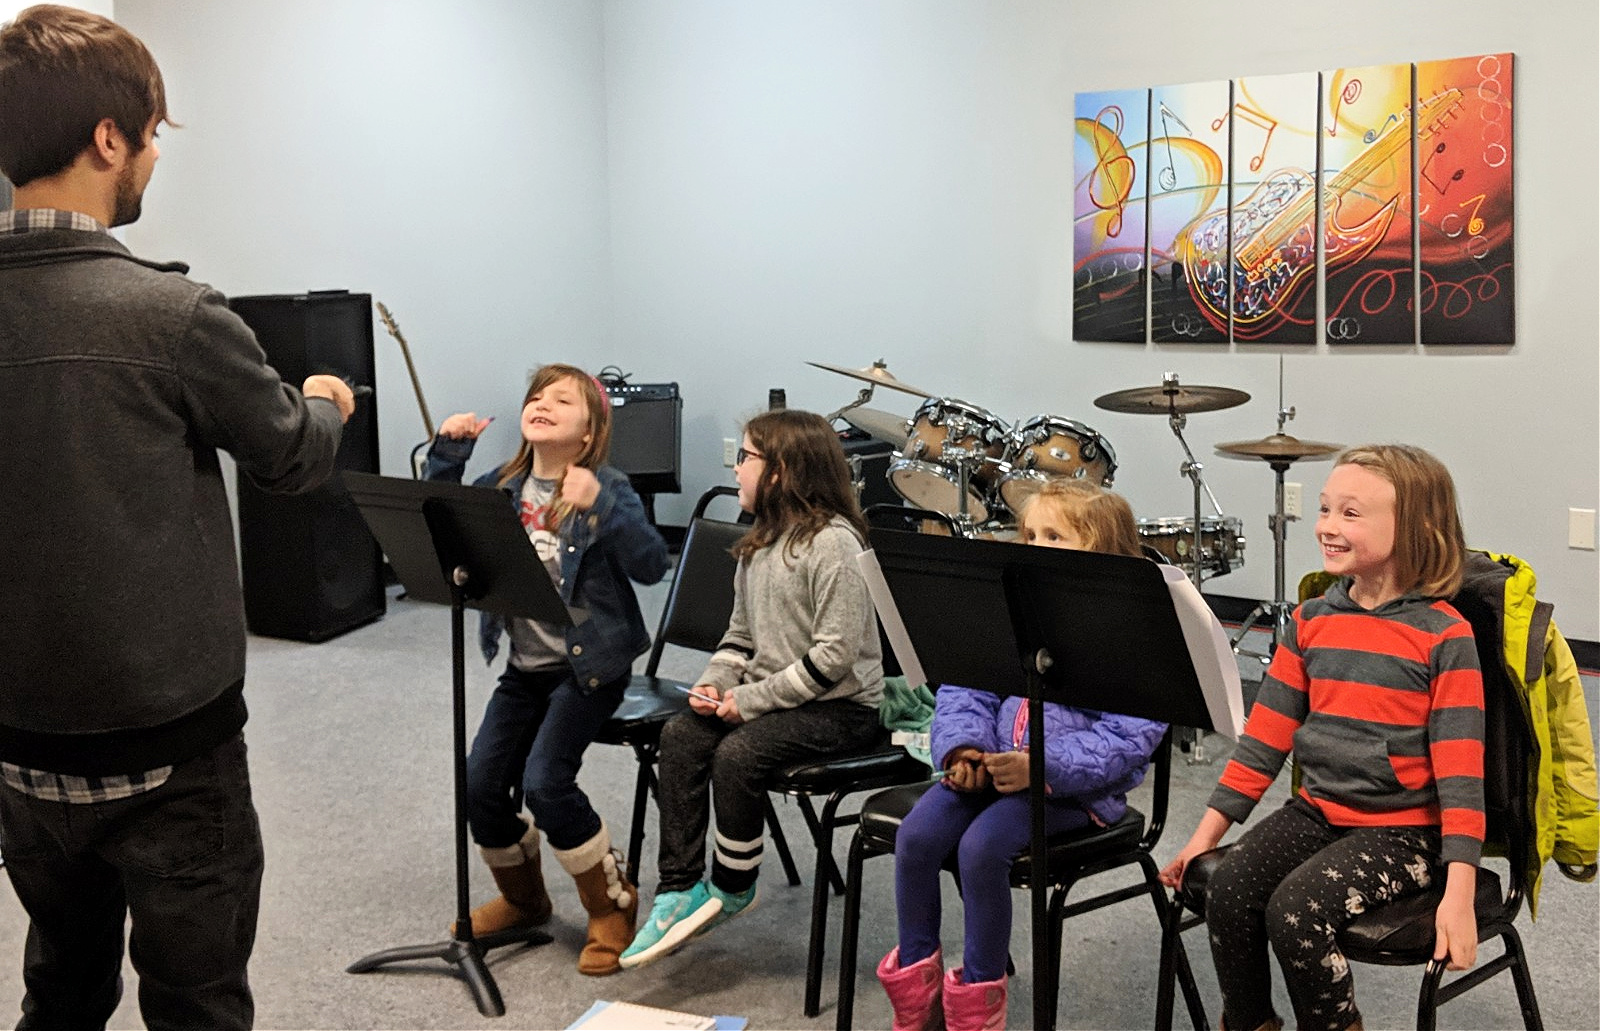 violin lessons for kids and adults near me in conway ar